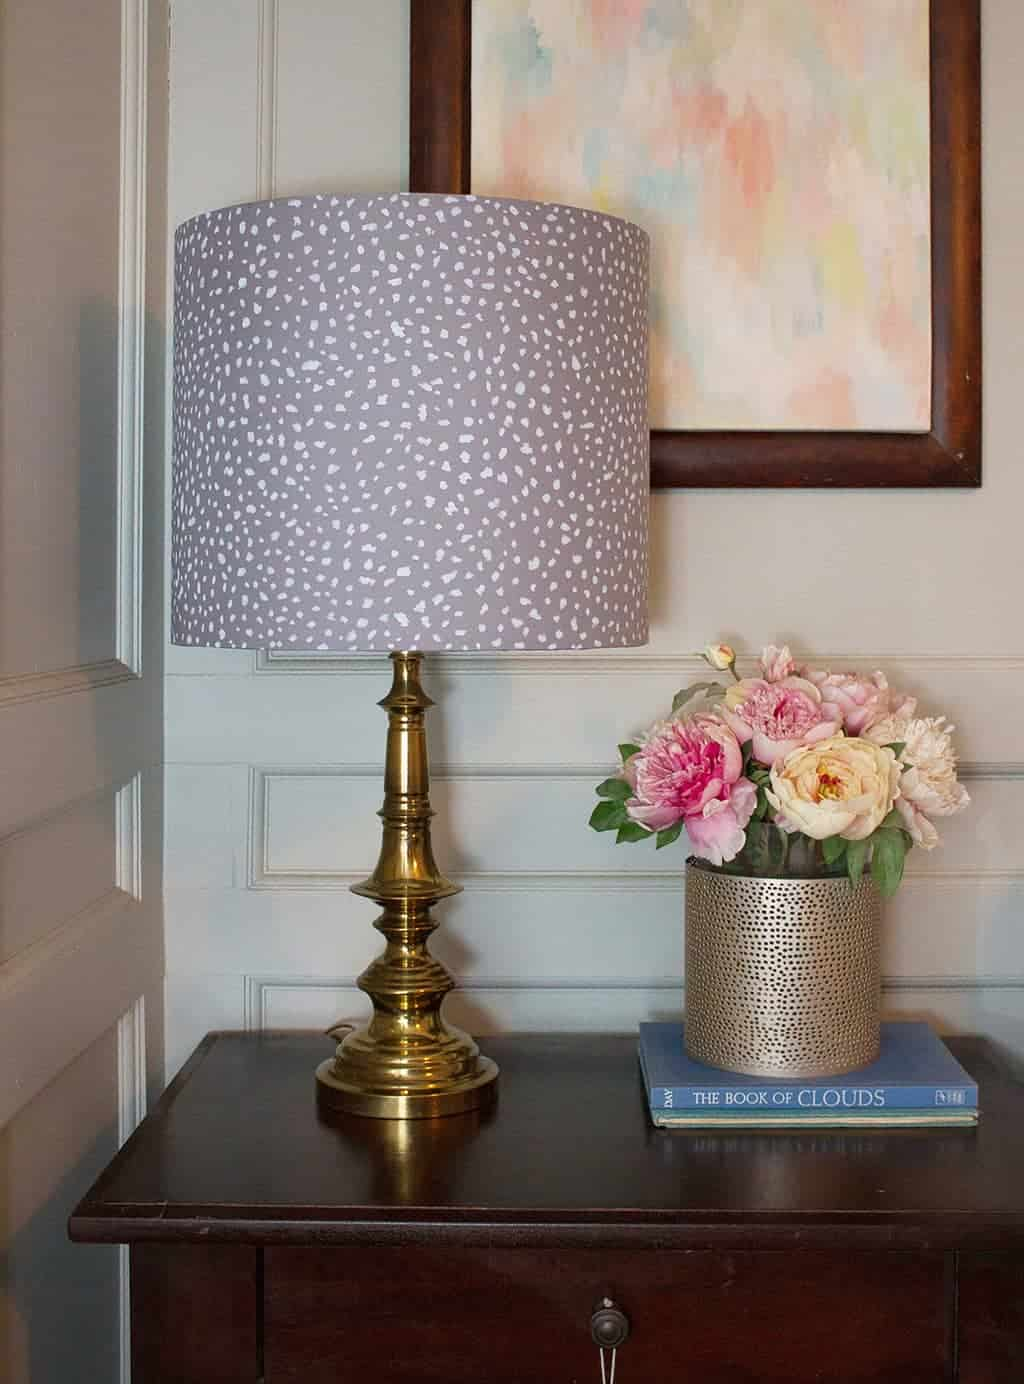 Make your own diy lamp shade from an i like that lamp kit audrey of oh so lovely blog shows you just how easy it is to make your aloadofball Image collections